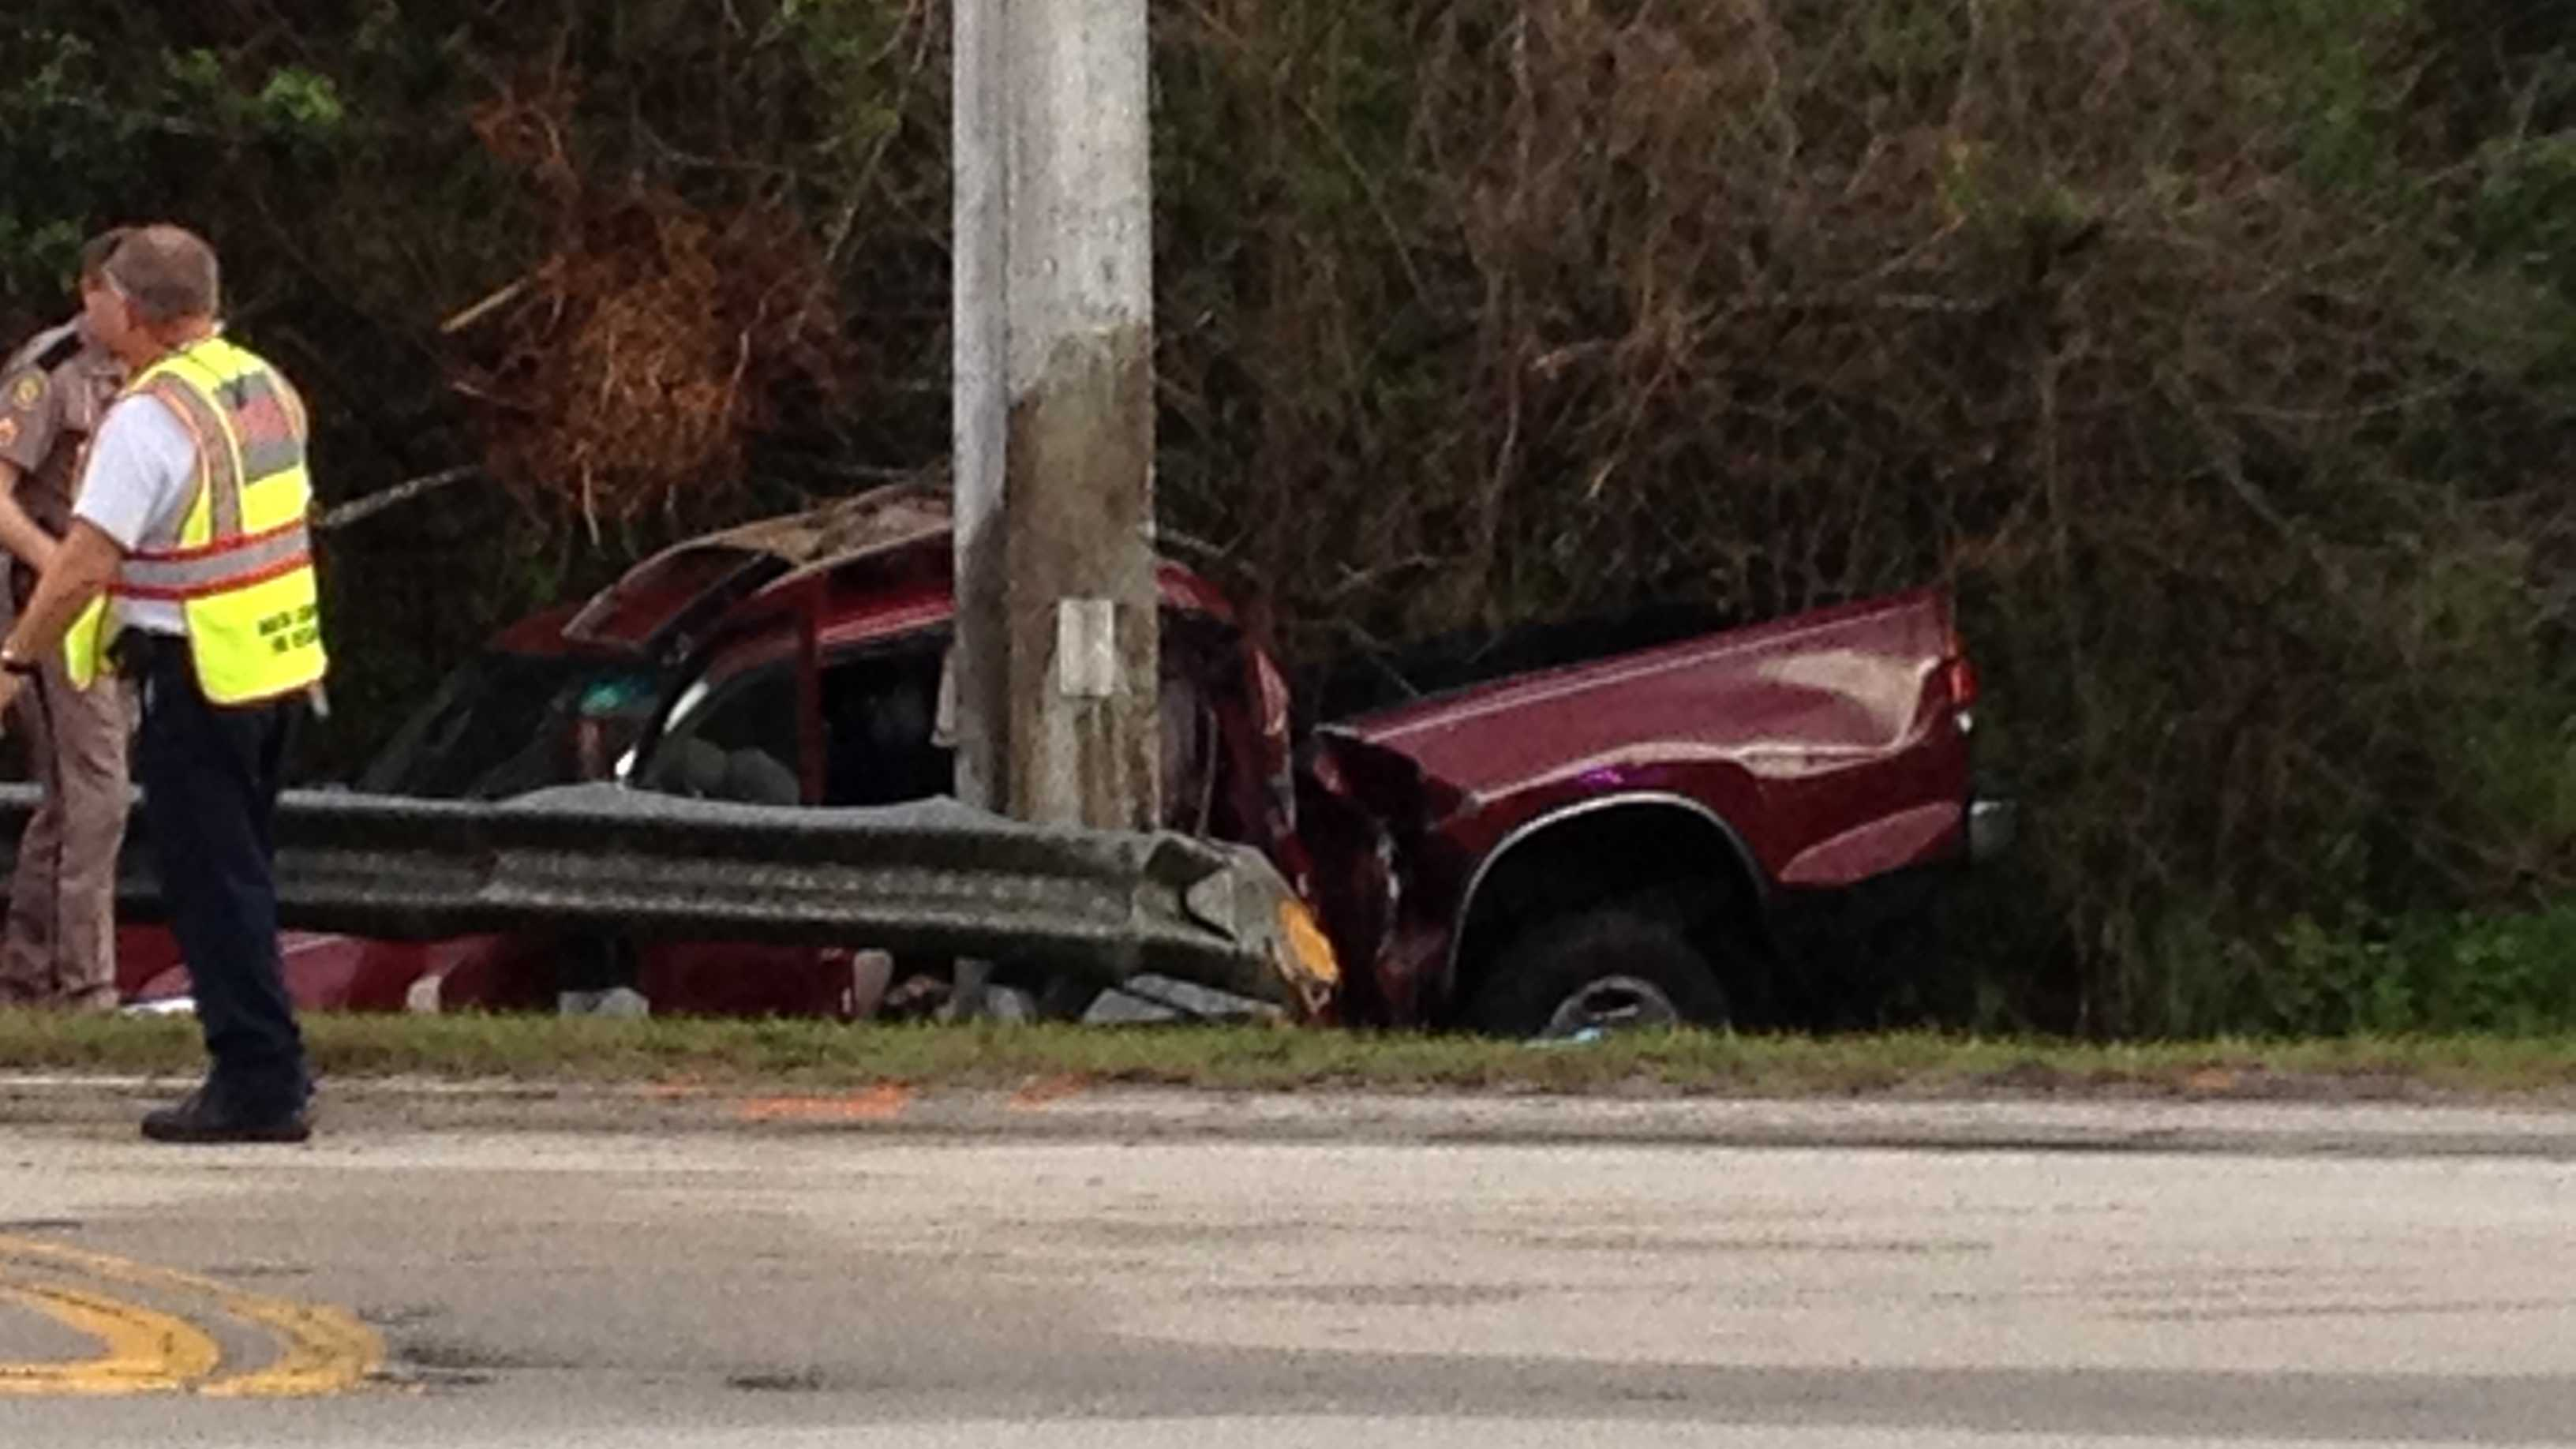 A 15-year-old girl was killed in this crash outside Crystal Lake Elementary School.